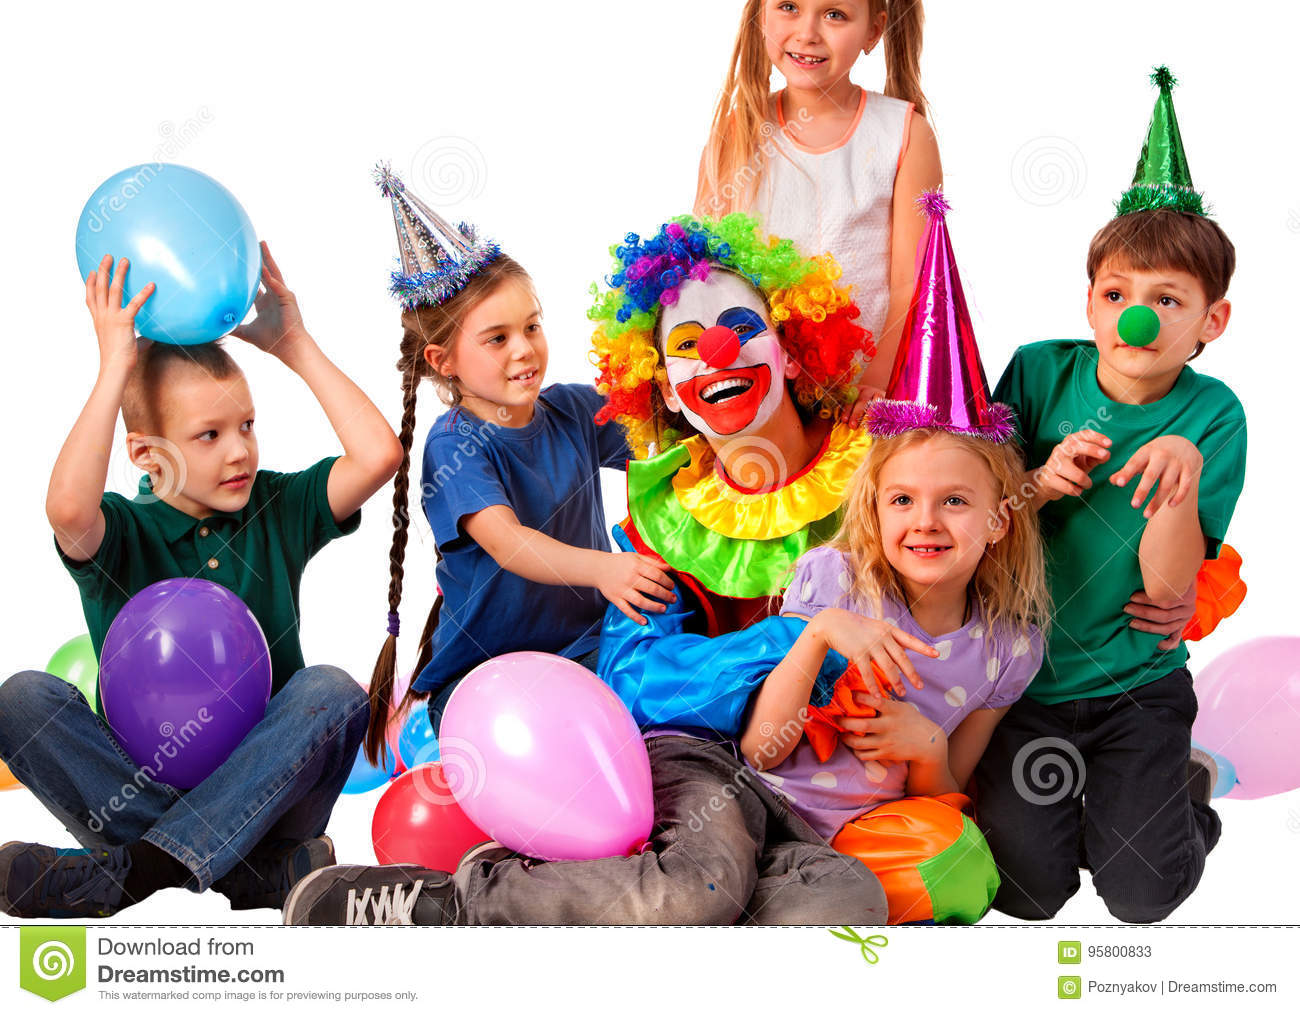 Birthday Child Clown Playing With Children Kid Wearing Party Hat Hold Balloons Happiest Fun Of Group People Pose For Camera On White Background